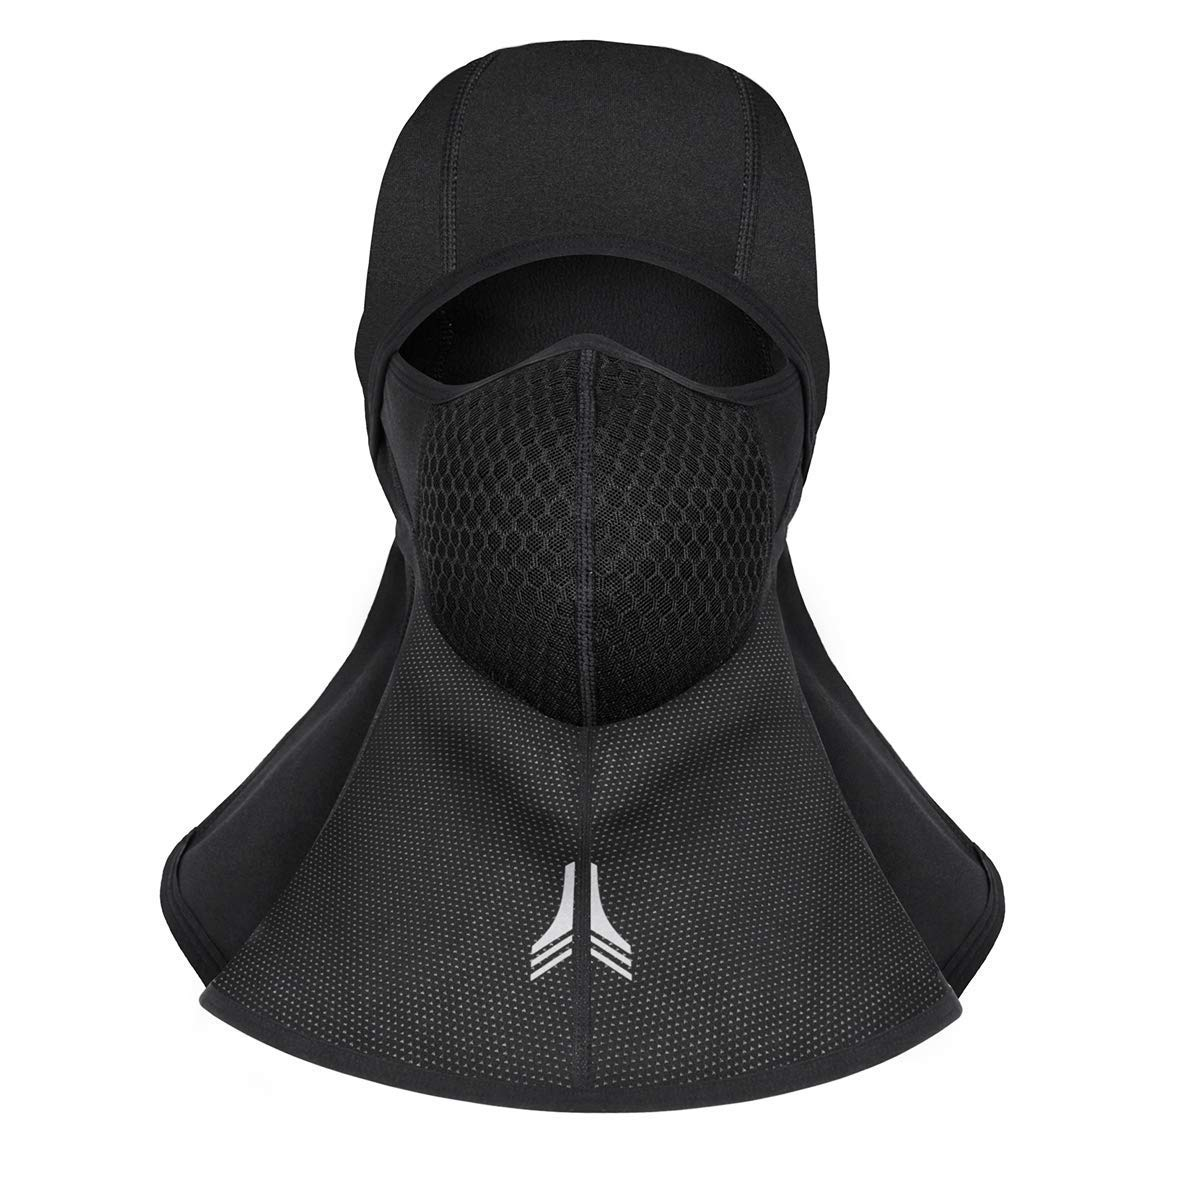 MOZOWO Balaclava Winter Windproof Waterproof Breathable Full Face Mask Men Women